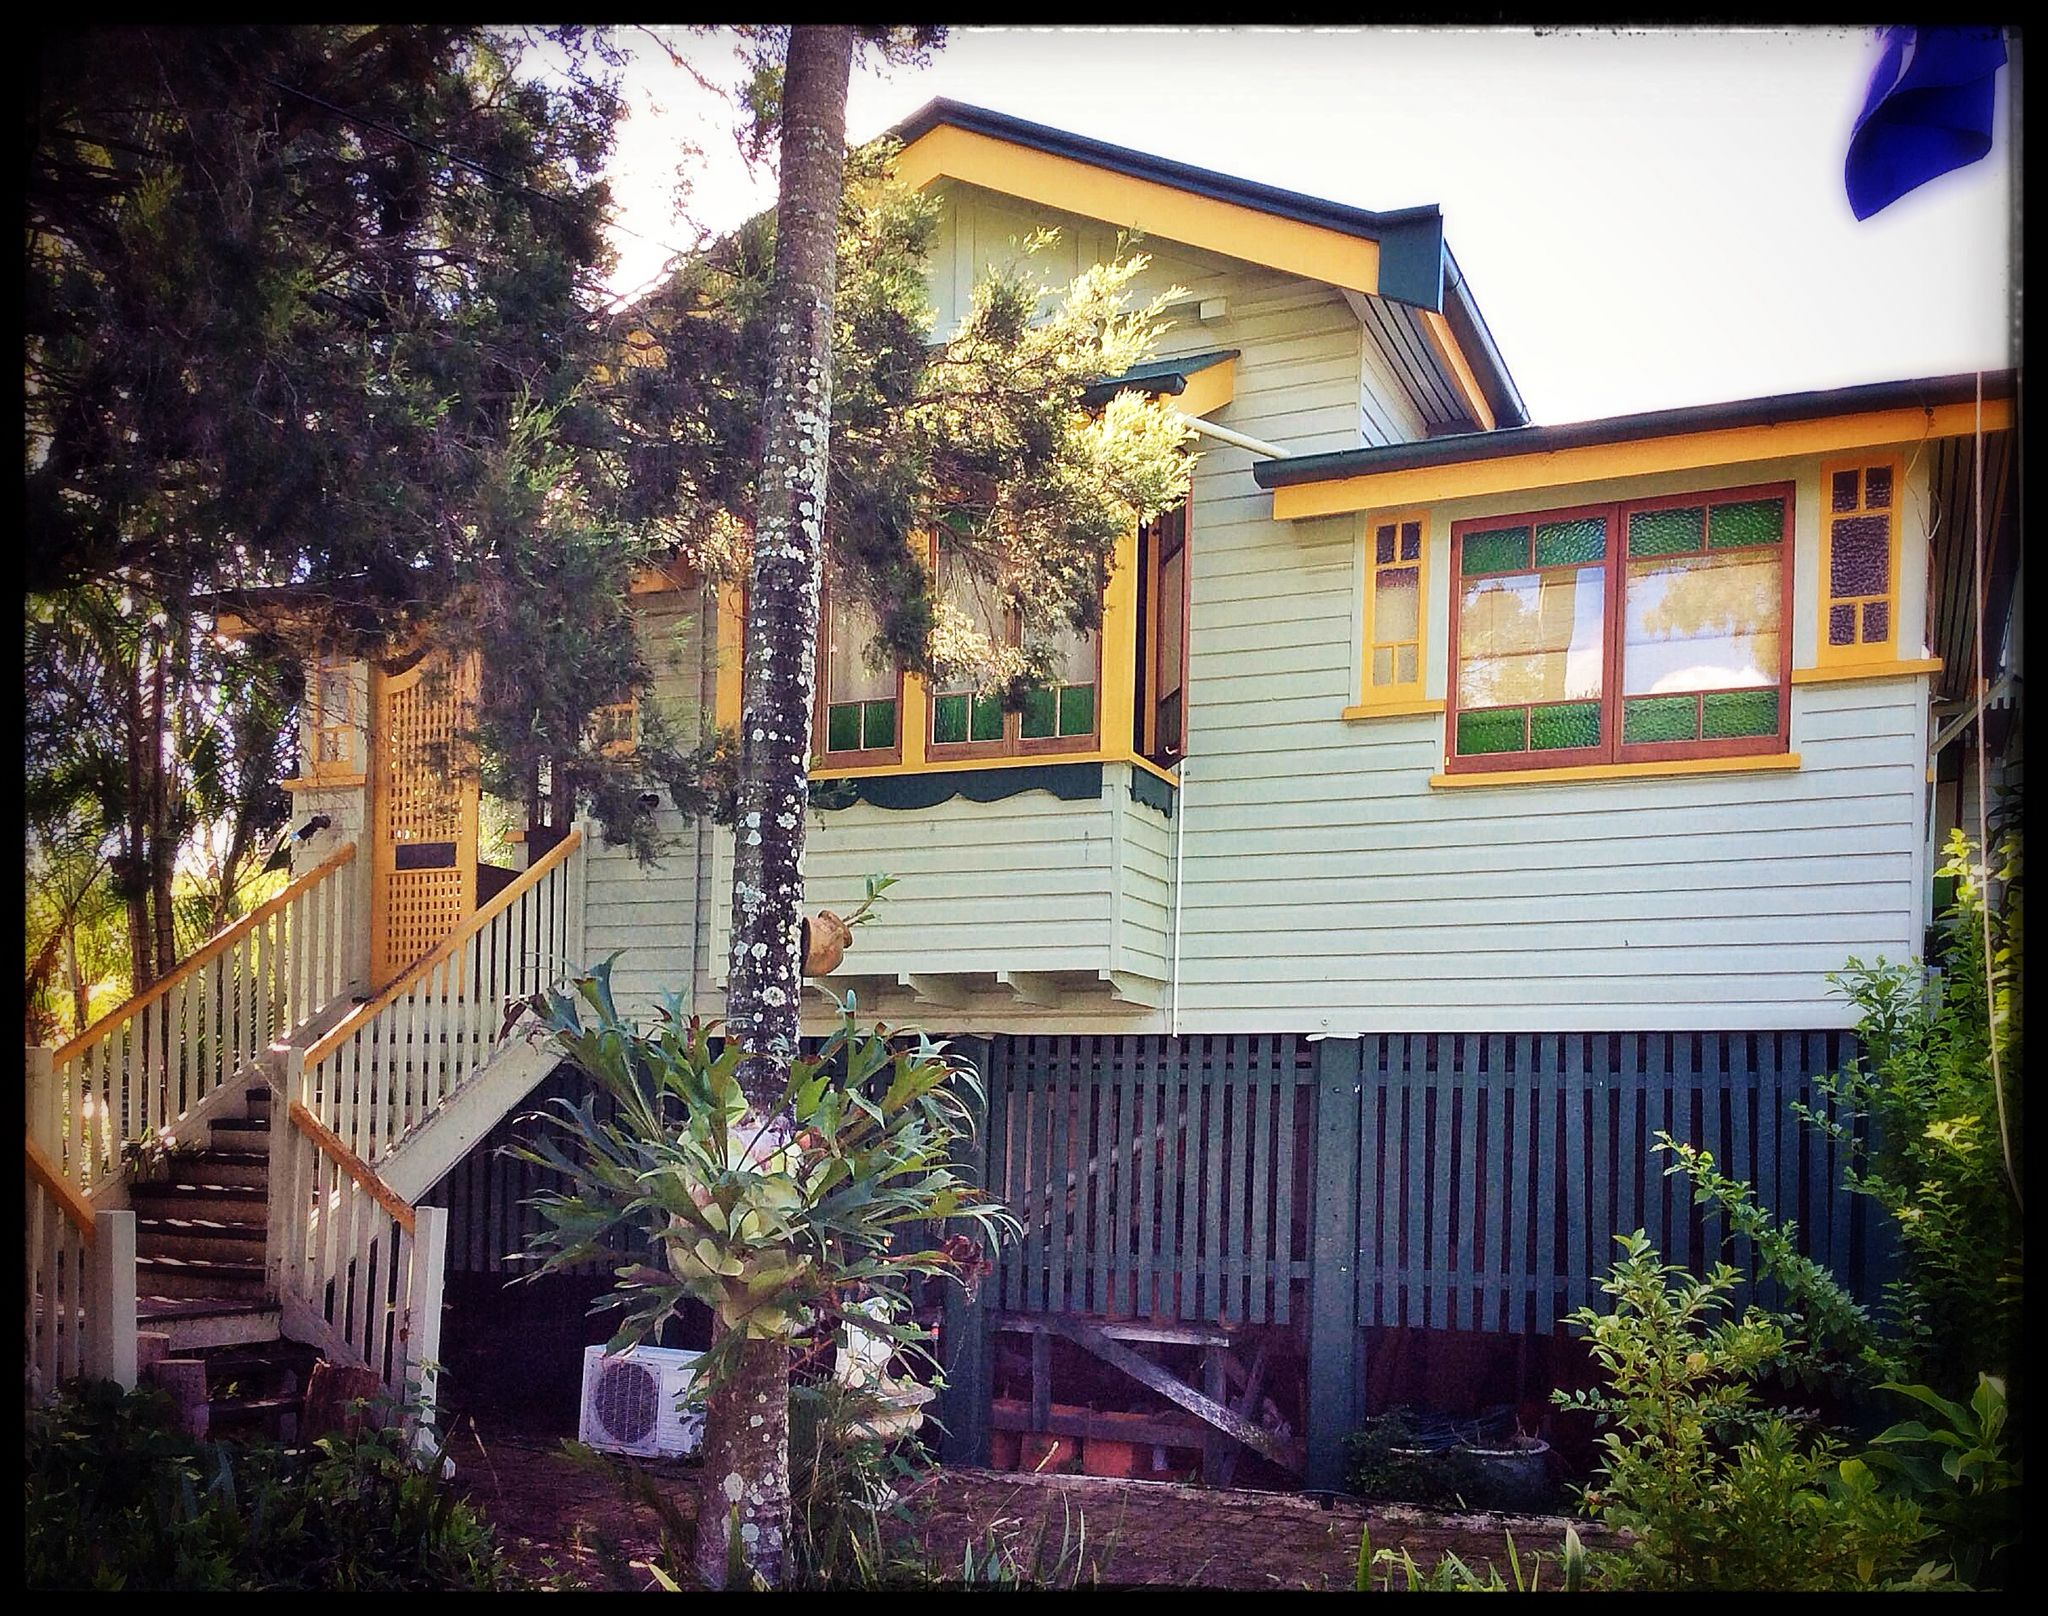 This is a classic 'Old Queenslander'. 2015 March